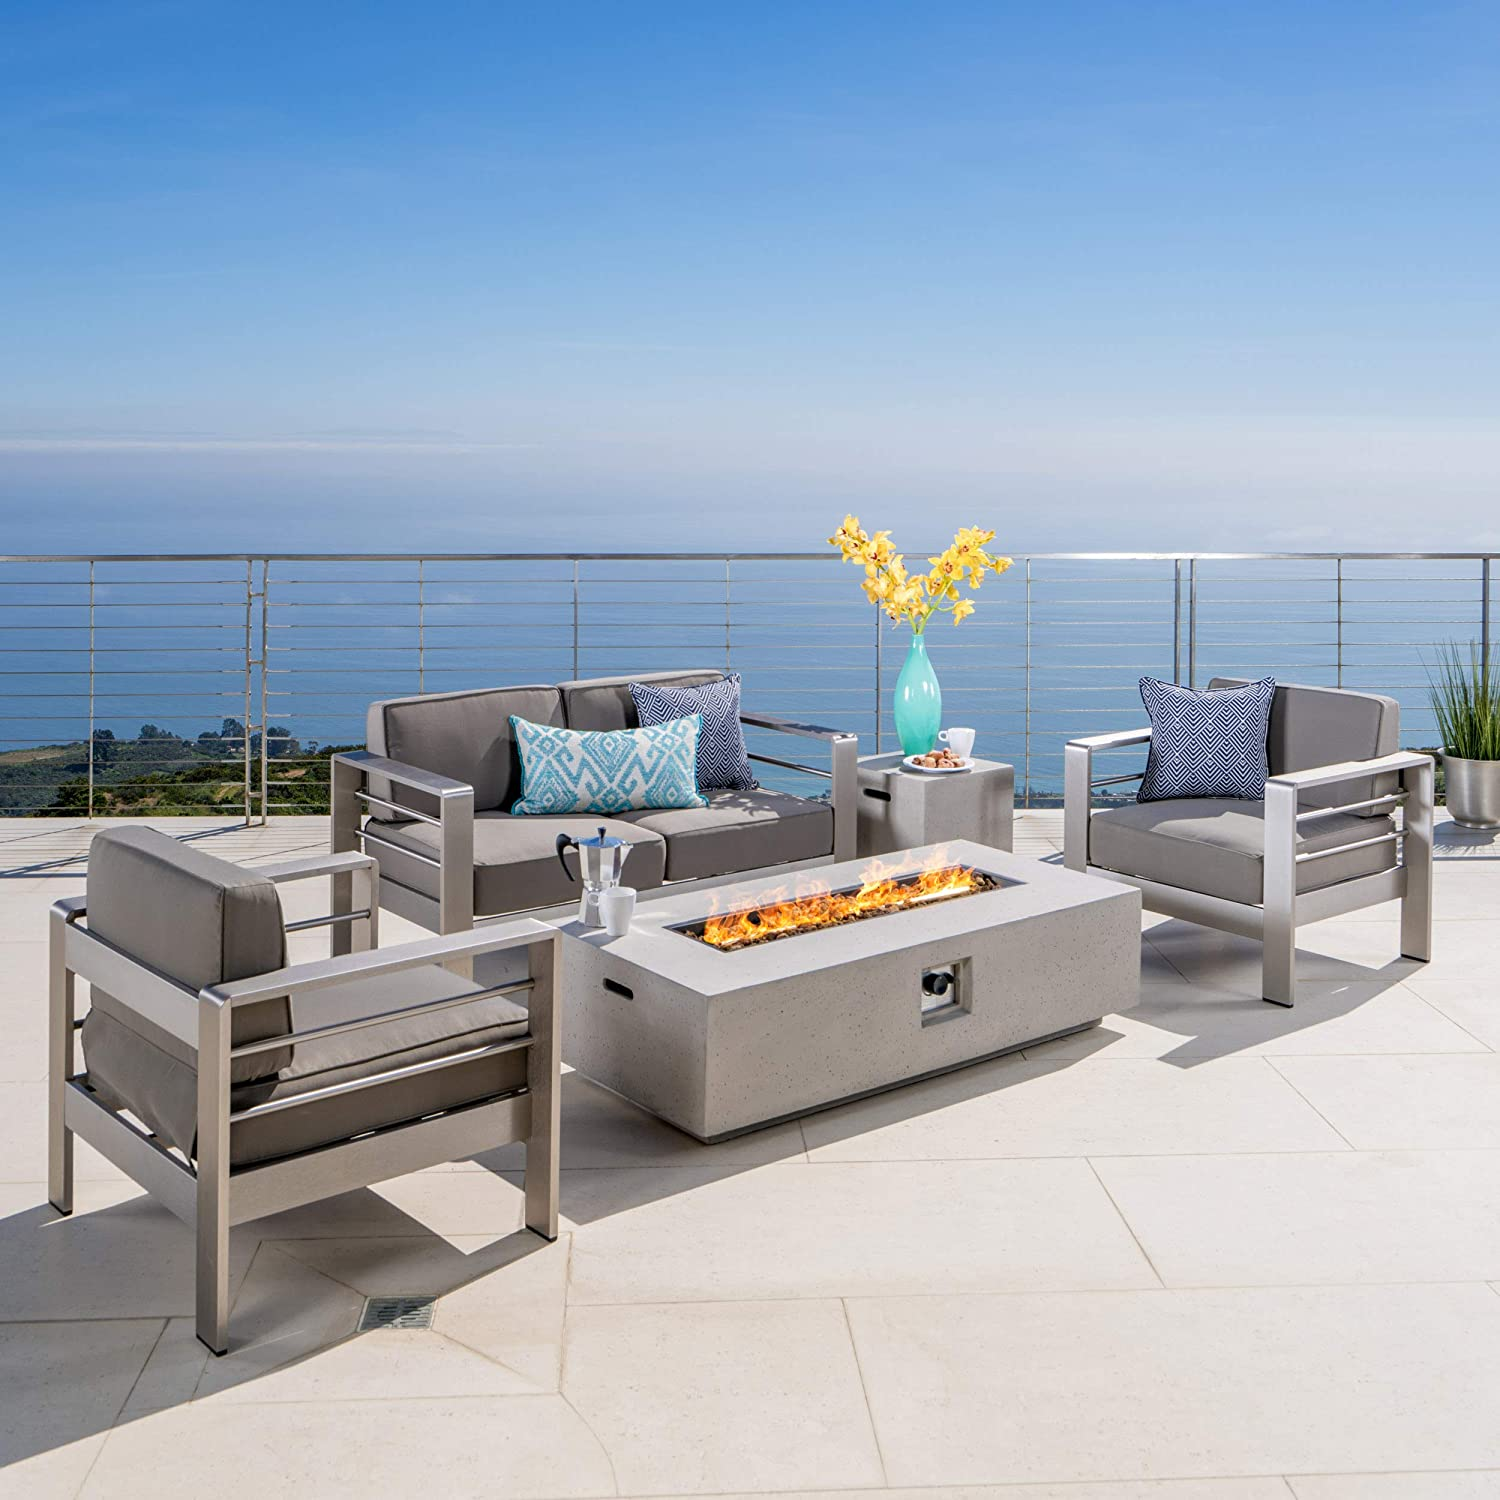 Amazon.com: Crested Bay Patio Furniture. Set de sofa ...